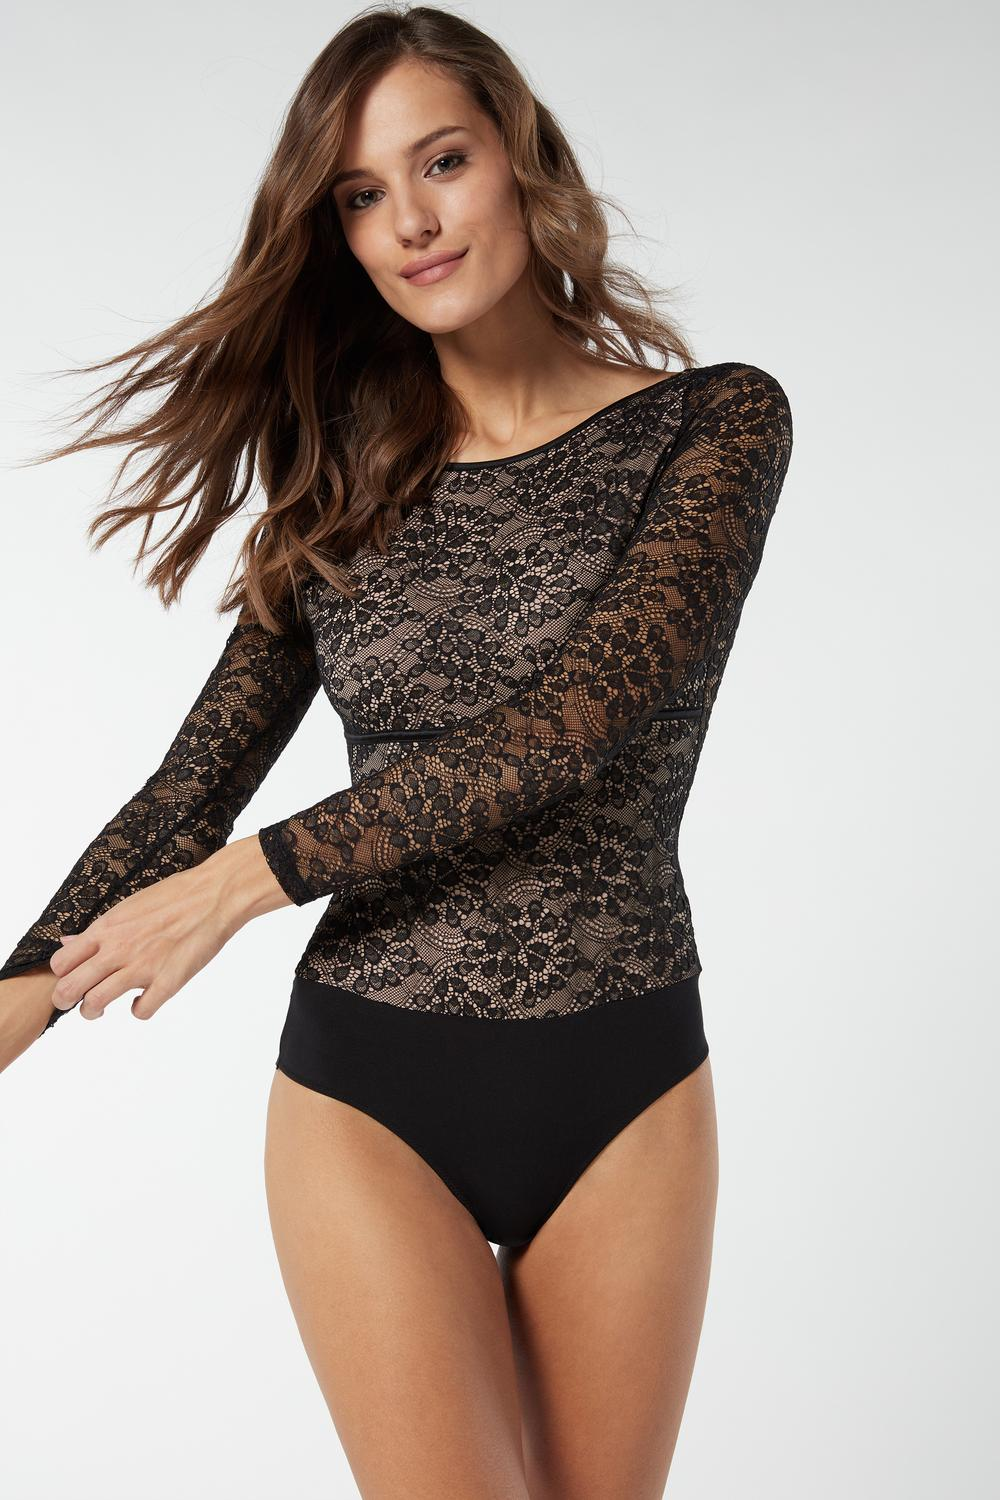 The Garden Fairy Long-Sleeved Lace Body